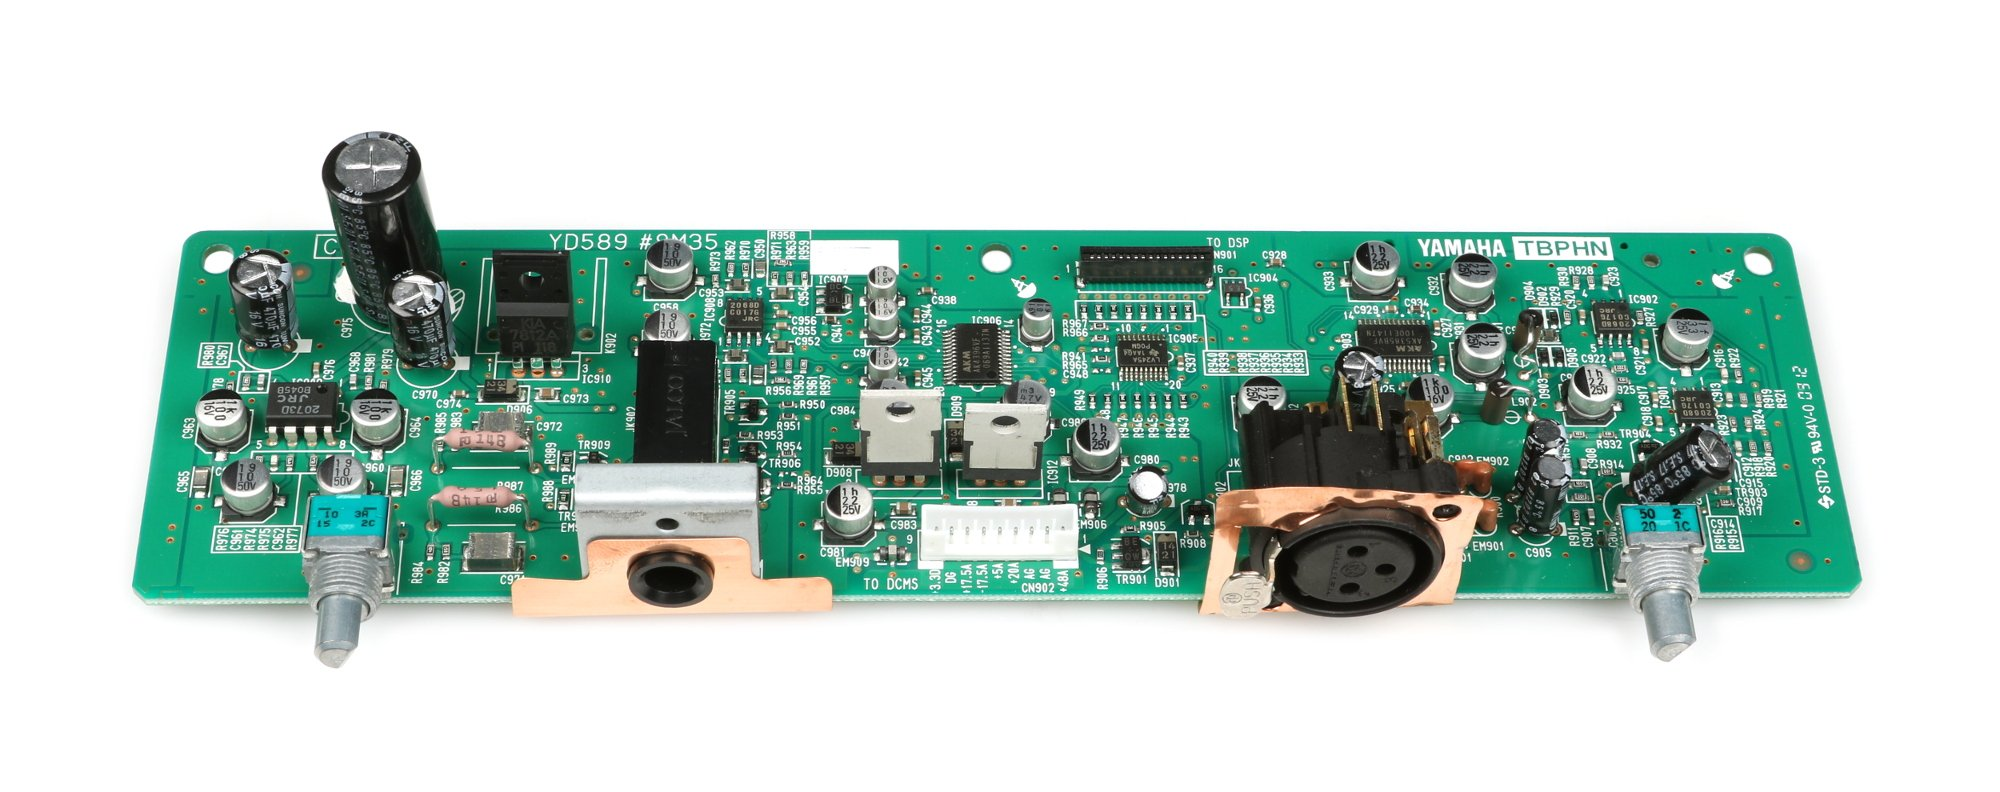 yamaha wz800100 headphone pcb assembly for cl5 full compass systems. Black Bedroom Furniture Sets. Home Design Ideas